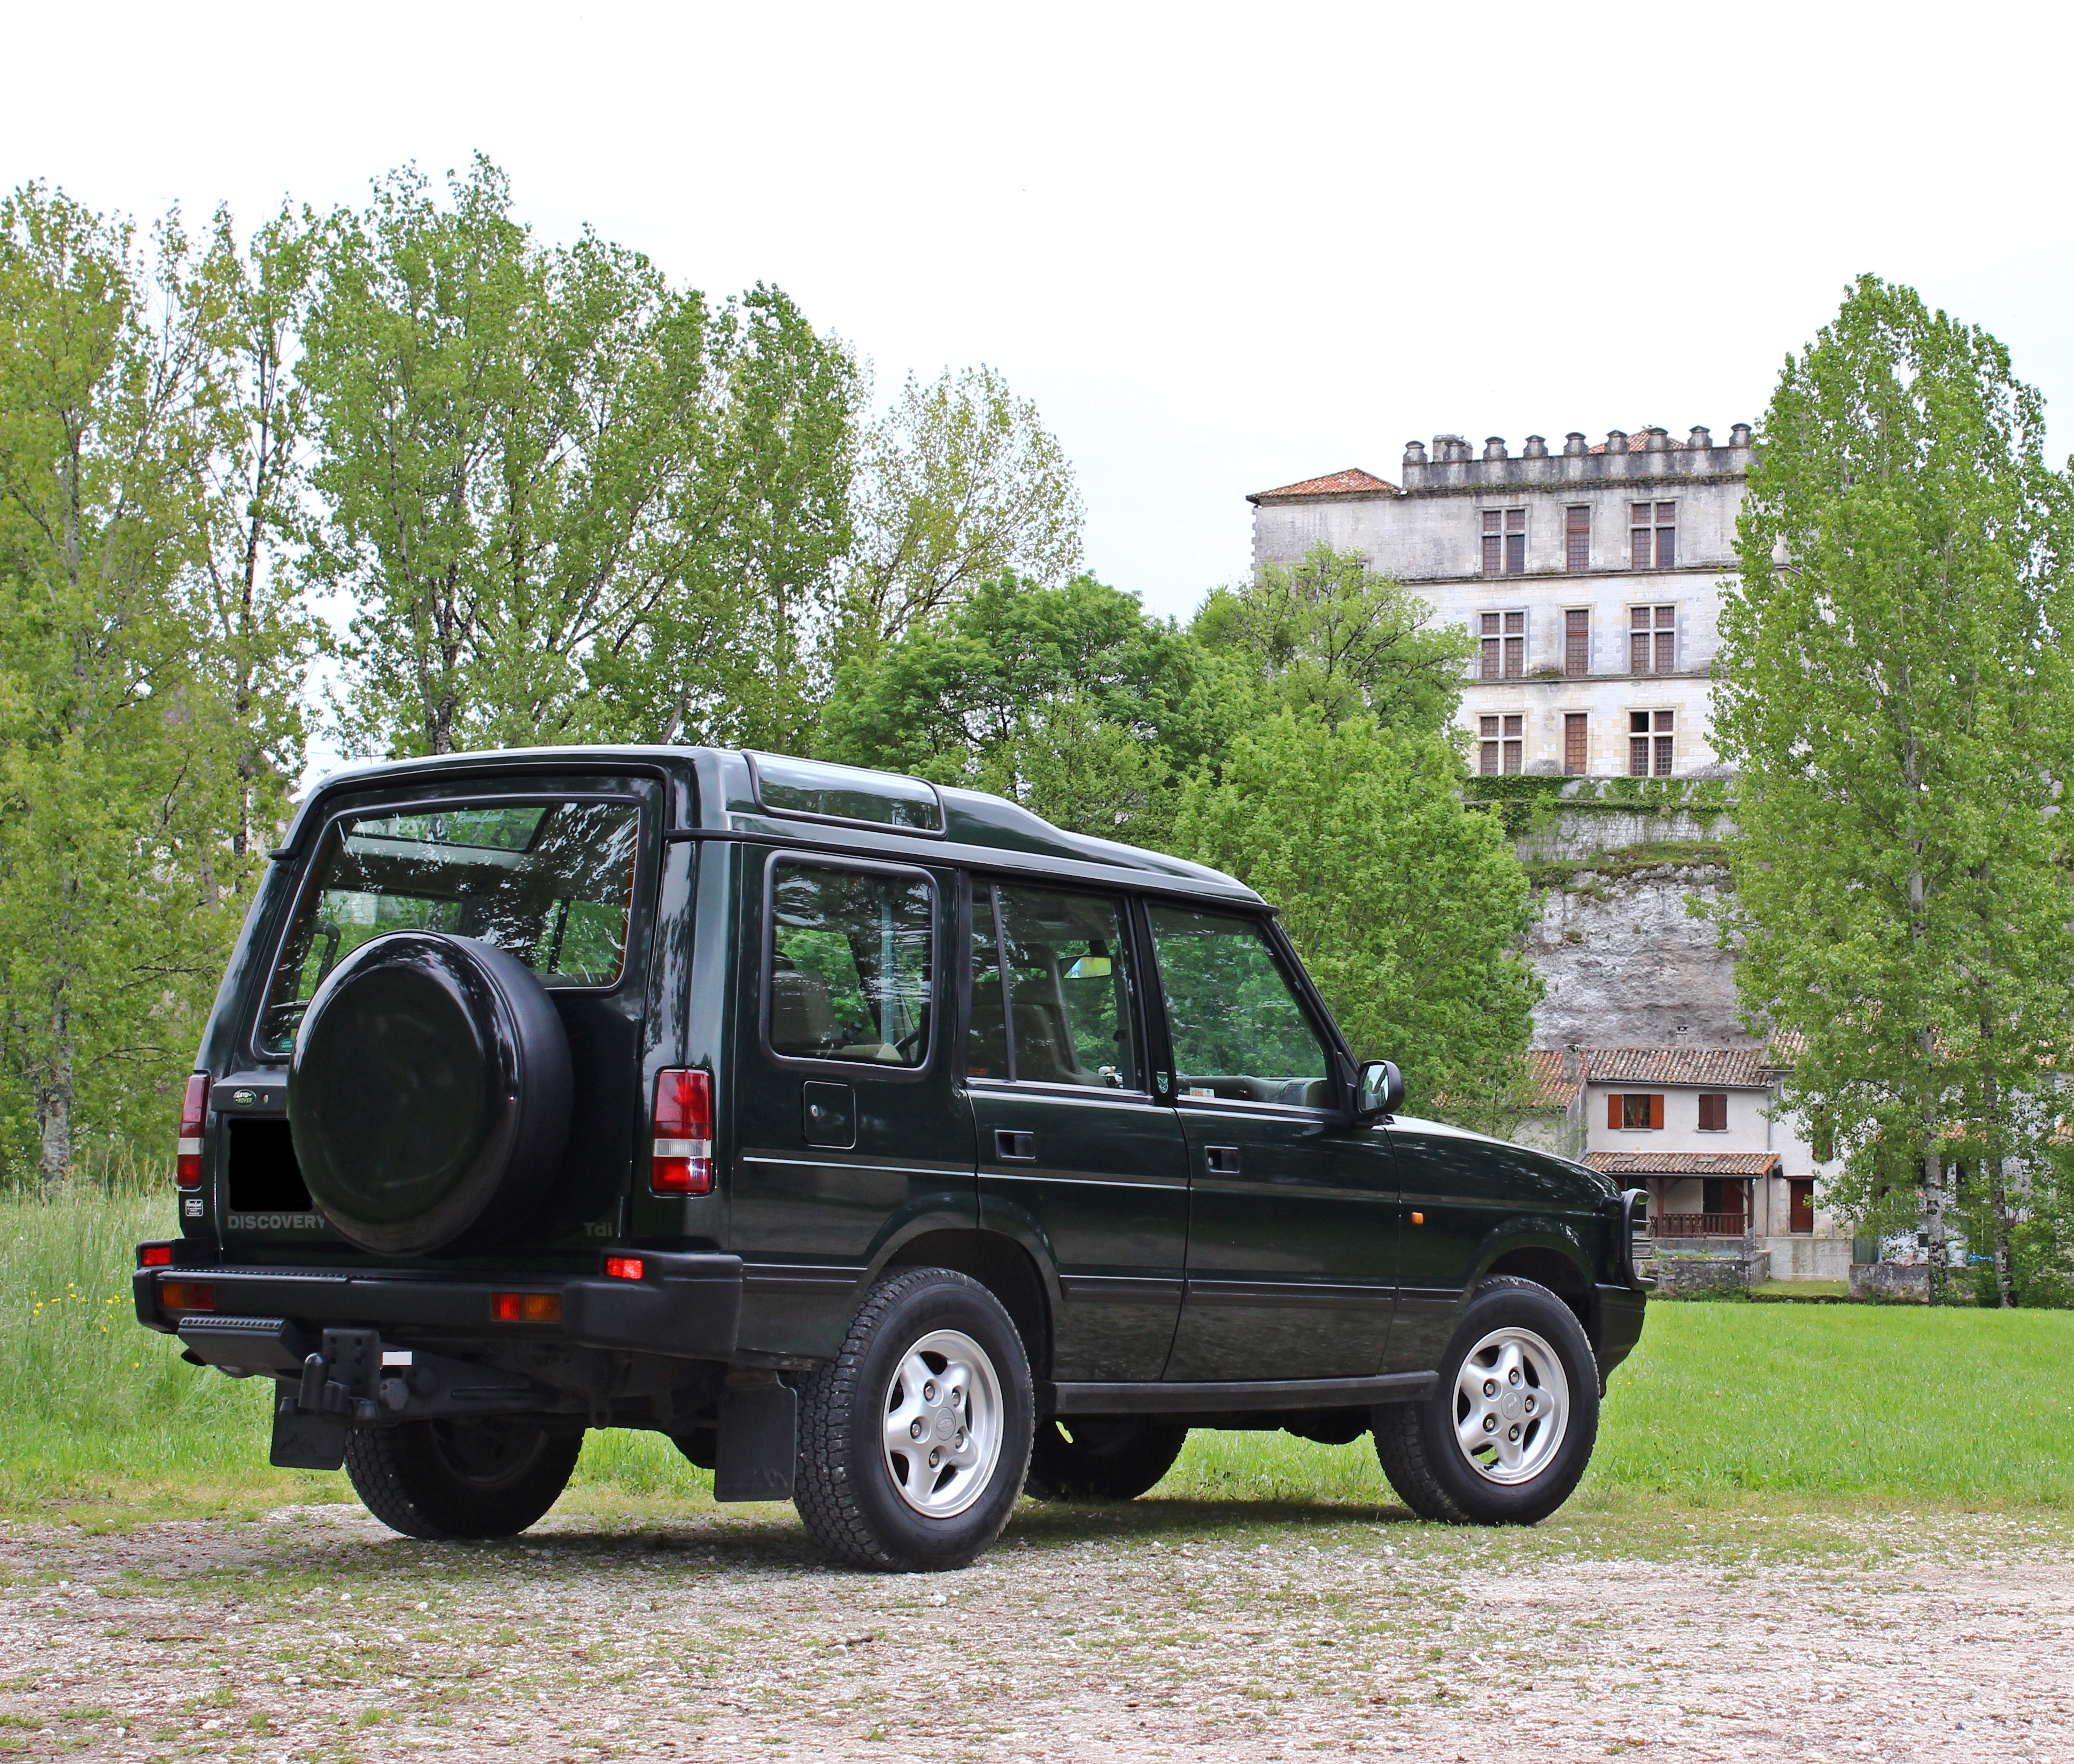 file land rover discovery 300 tdi arri re jpg wikimedia commons. Black Bedroom Furniture Sets. Home Design Ideas